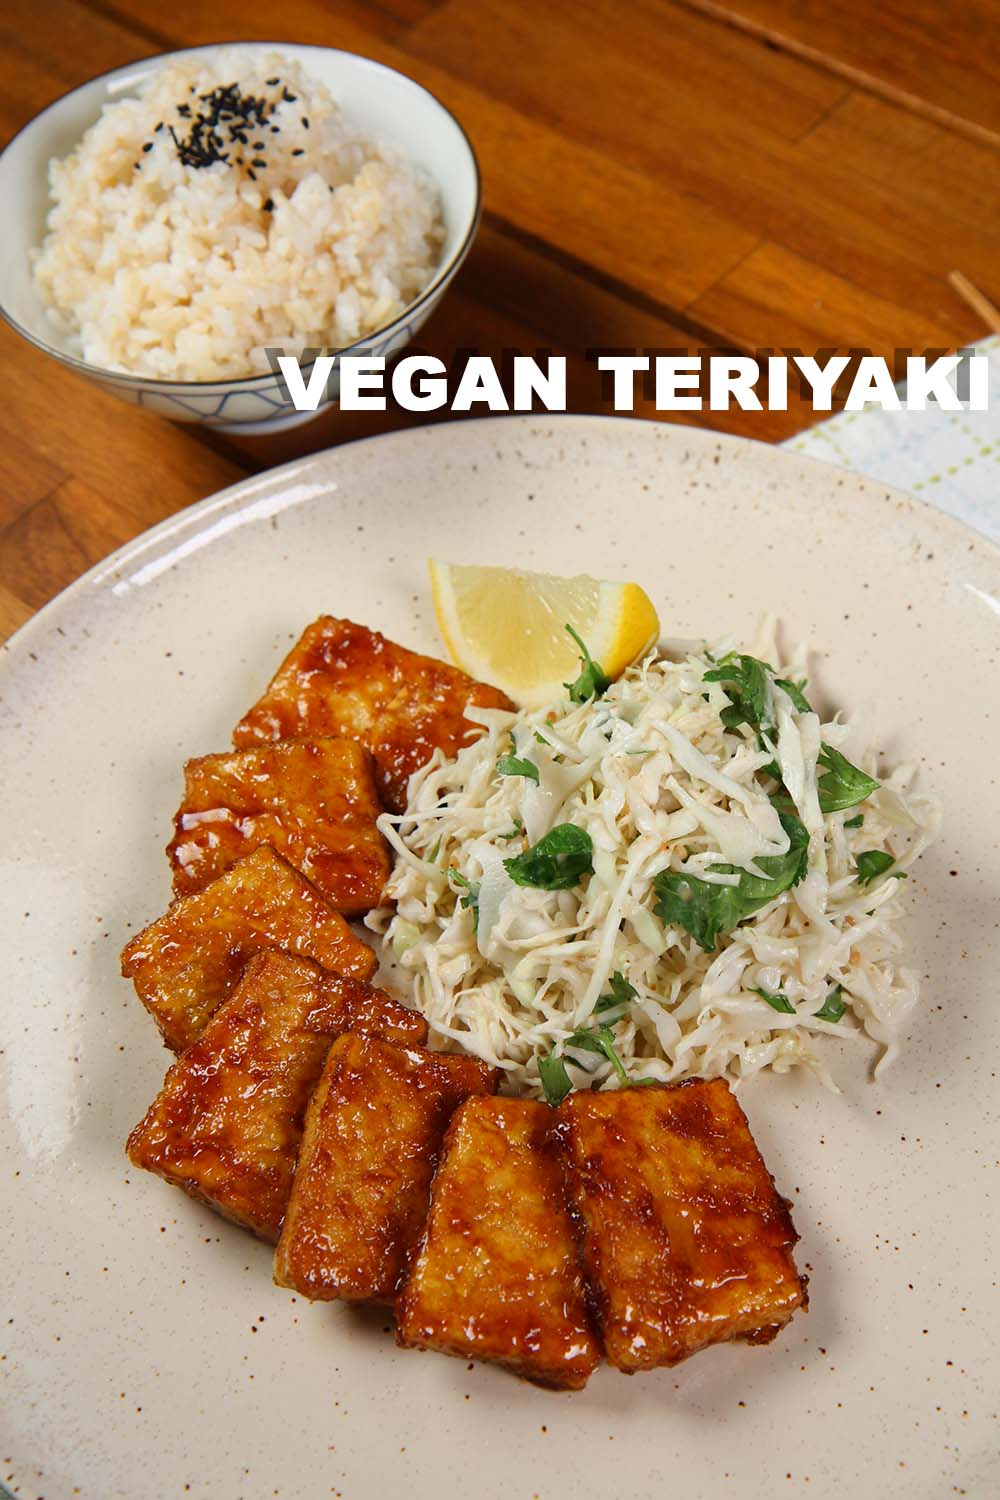 Vegan teriyaki recipe video seonkyoung longest vegan teriyaki recipe is right here recently im so into plant based diet and when i do i have to put my own asian flavors forumfinder Choice Image